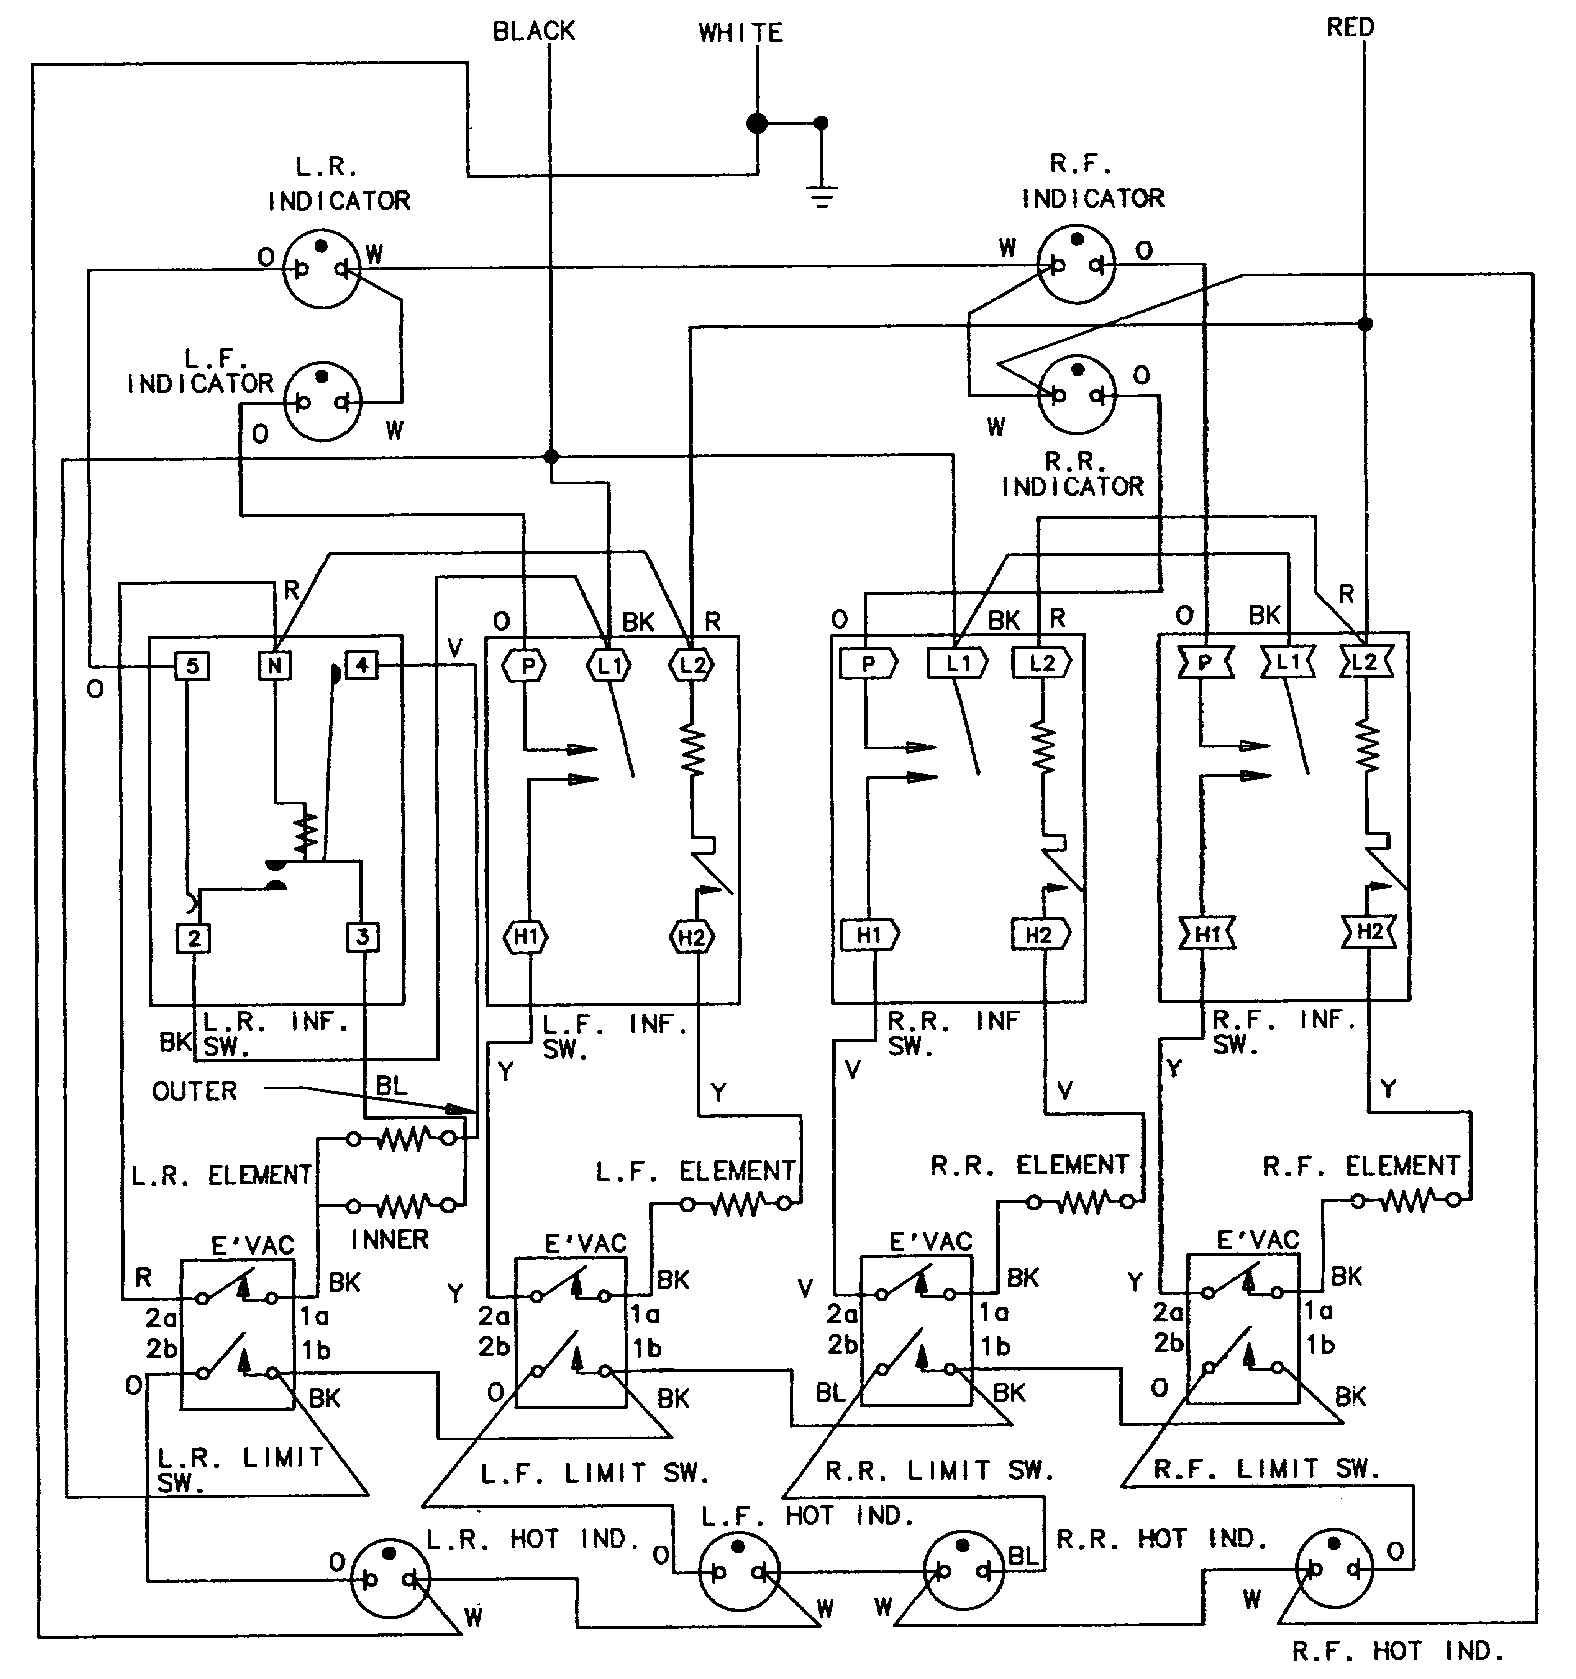 WIRING INFORMATION Diagram & Parts List for Model cce3401b